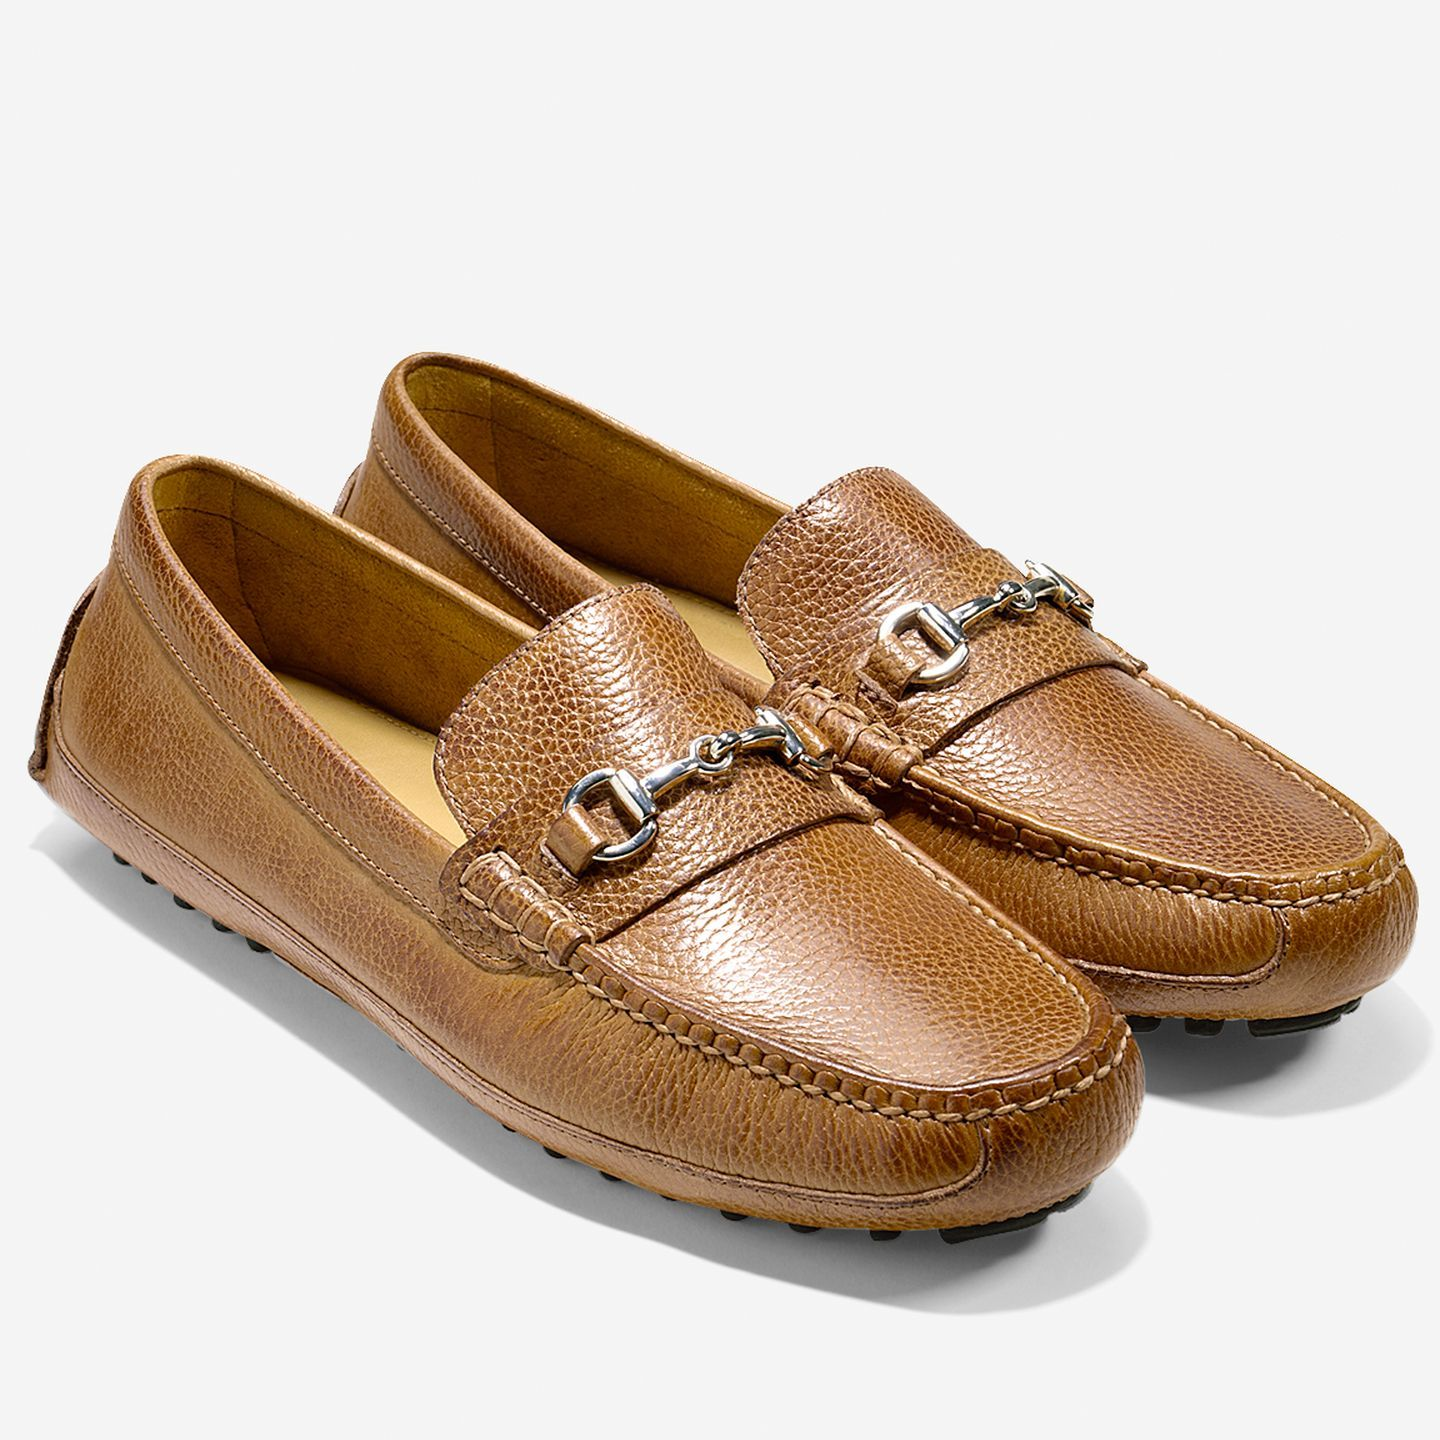 c8a0d721d Grant Canoe Bit Loafer in Tan by Cole Haan